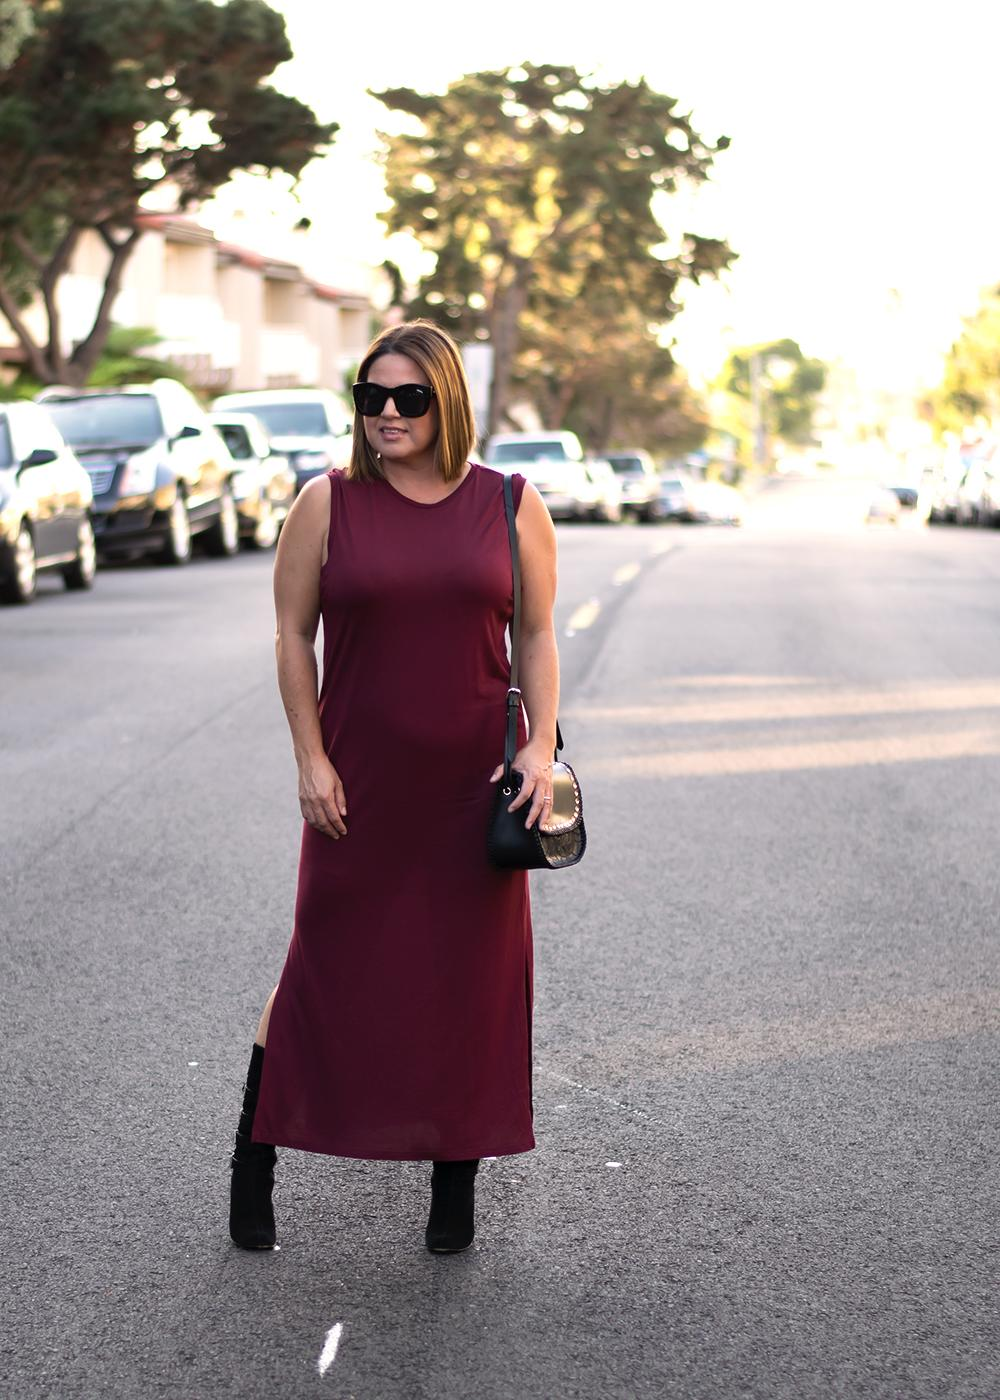 casual-outfit-los-angeles-fashion-street-style-blogger-personal-stylist-0547